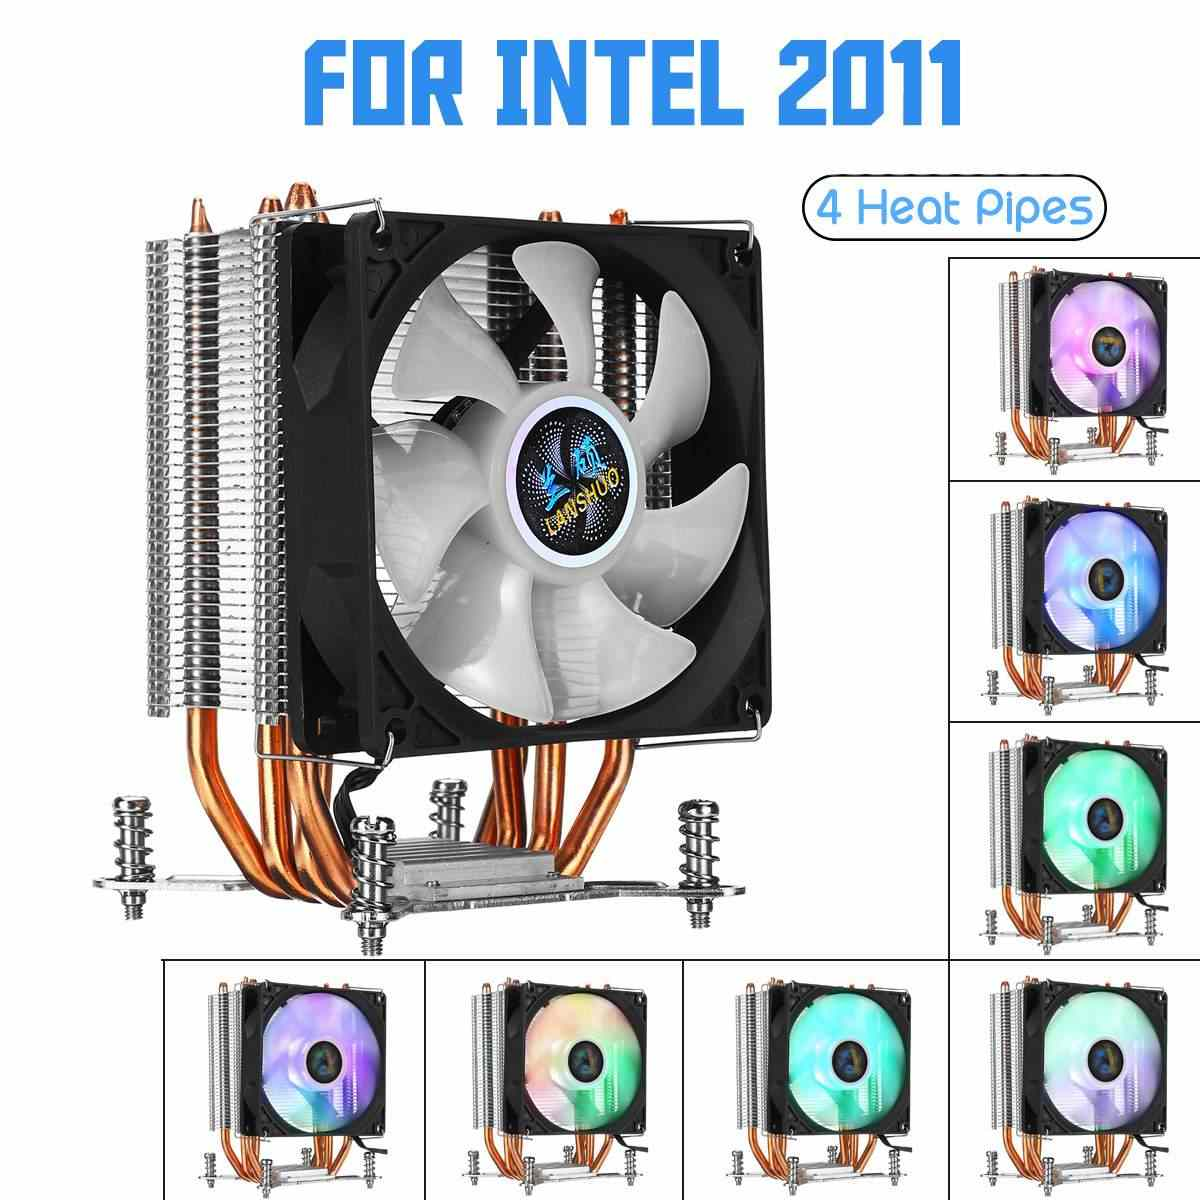 4 Heatpipe CPU Cooler per Aurora Light ventola di raffreddamento 90mm con RGB per Intel LGA 2011 CPU Cooler radiatore dissipatore di calore